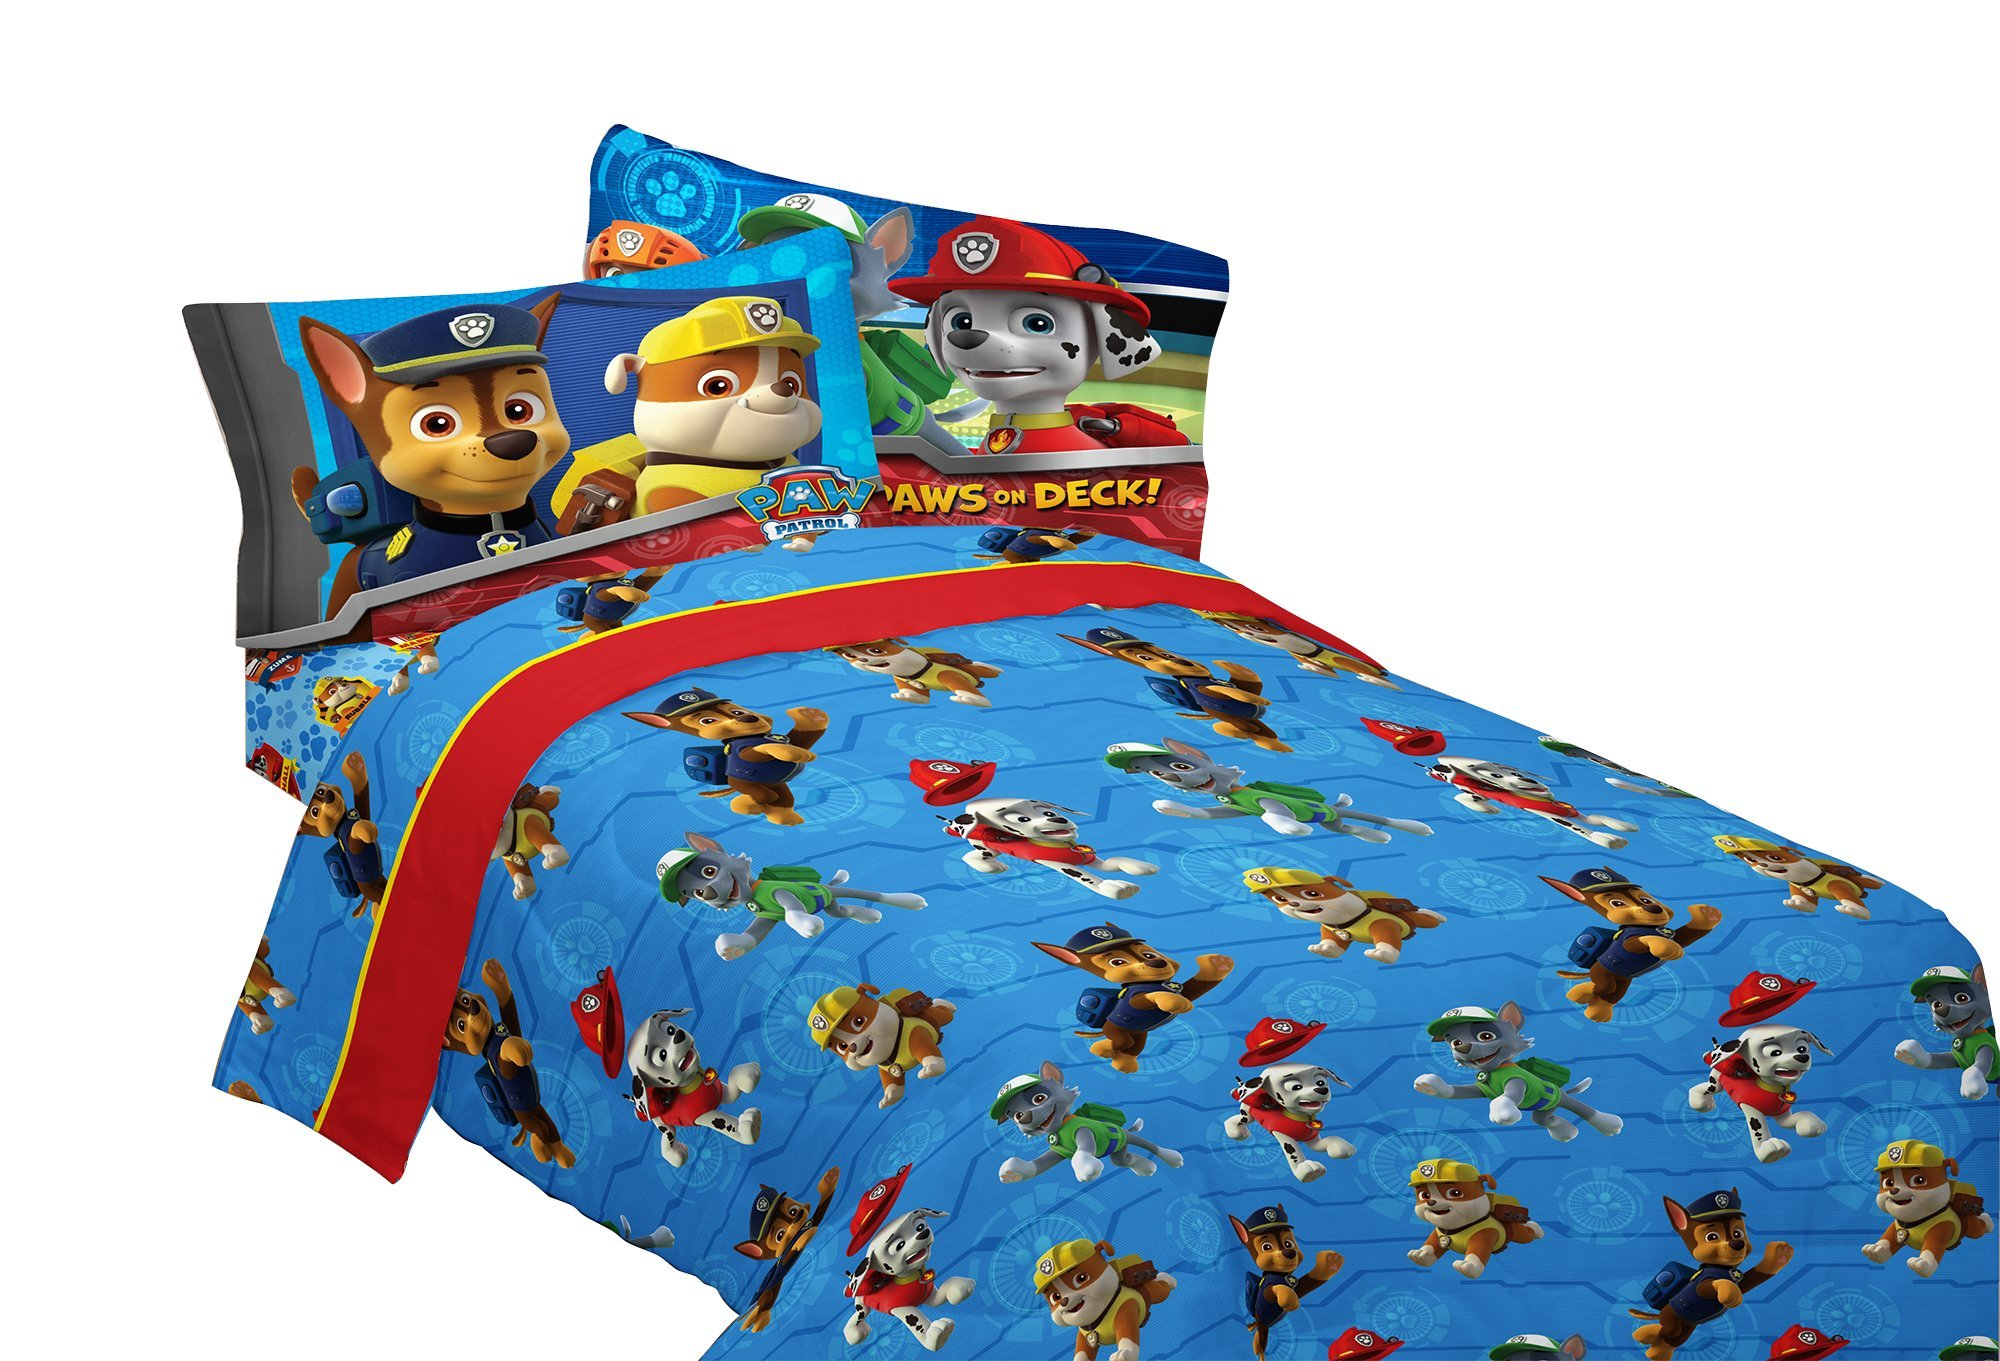 Nickelodeon PAW Patrol Ruff Ruff Rescue Sheet Set, Full by Nickelodeon